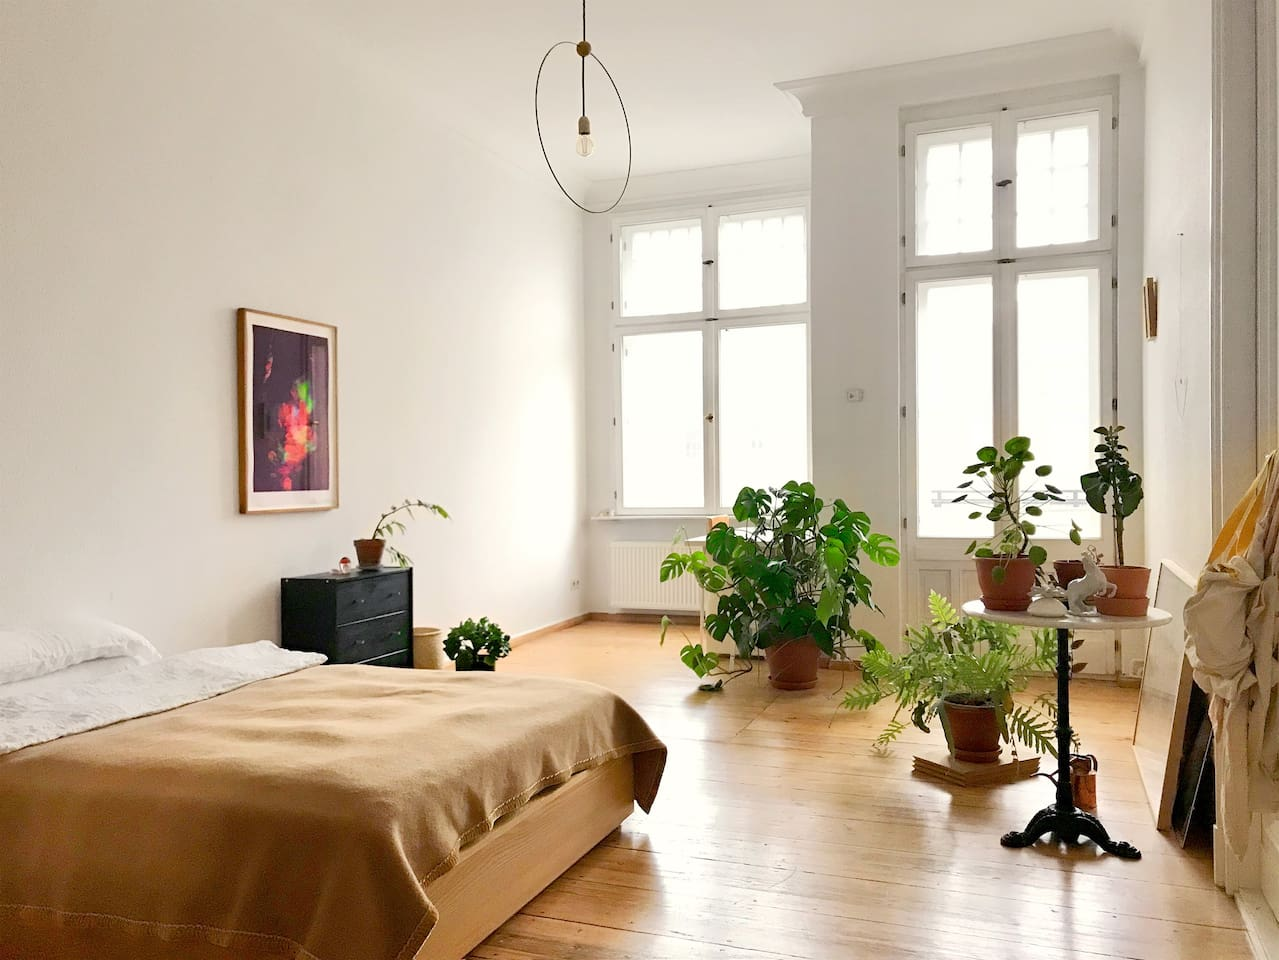 Bedroom with bed, table and balcony